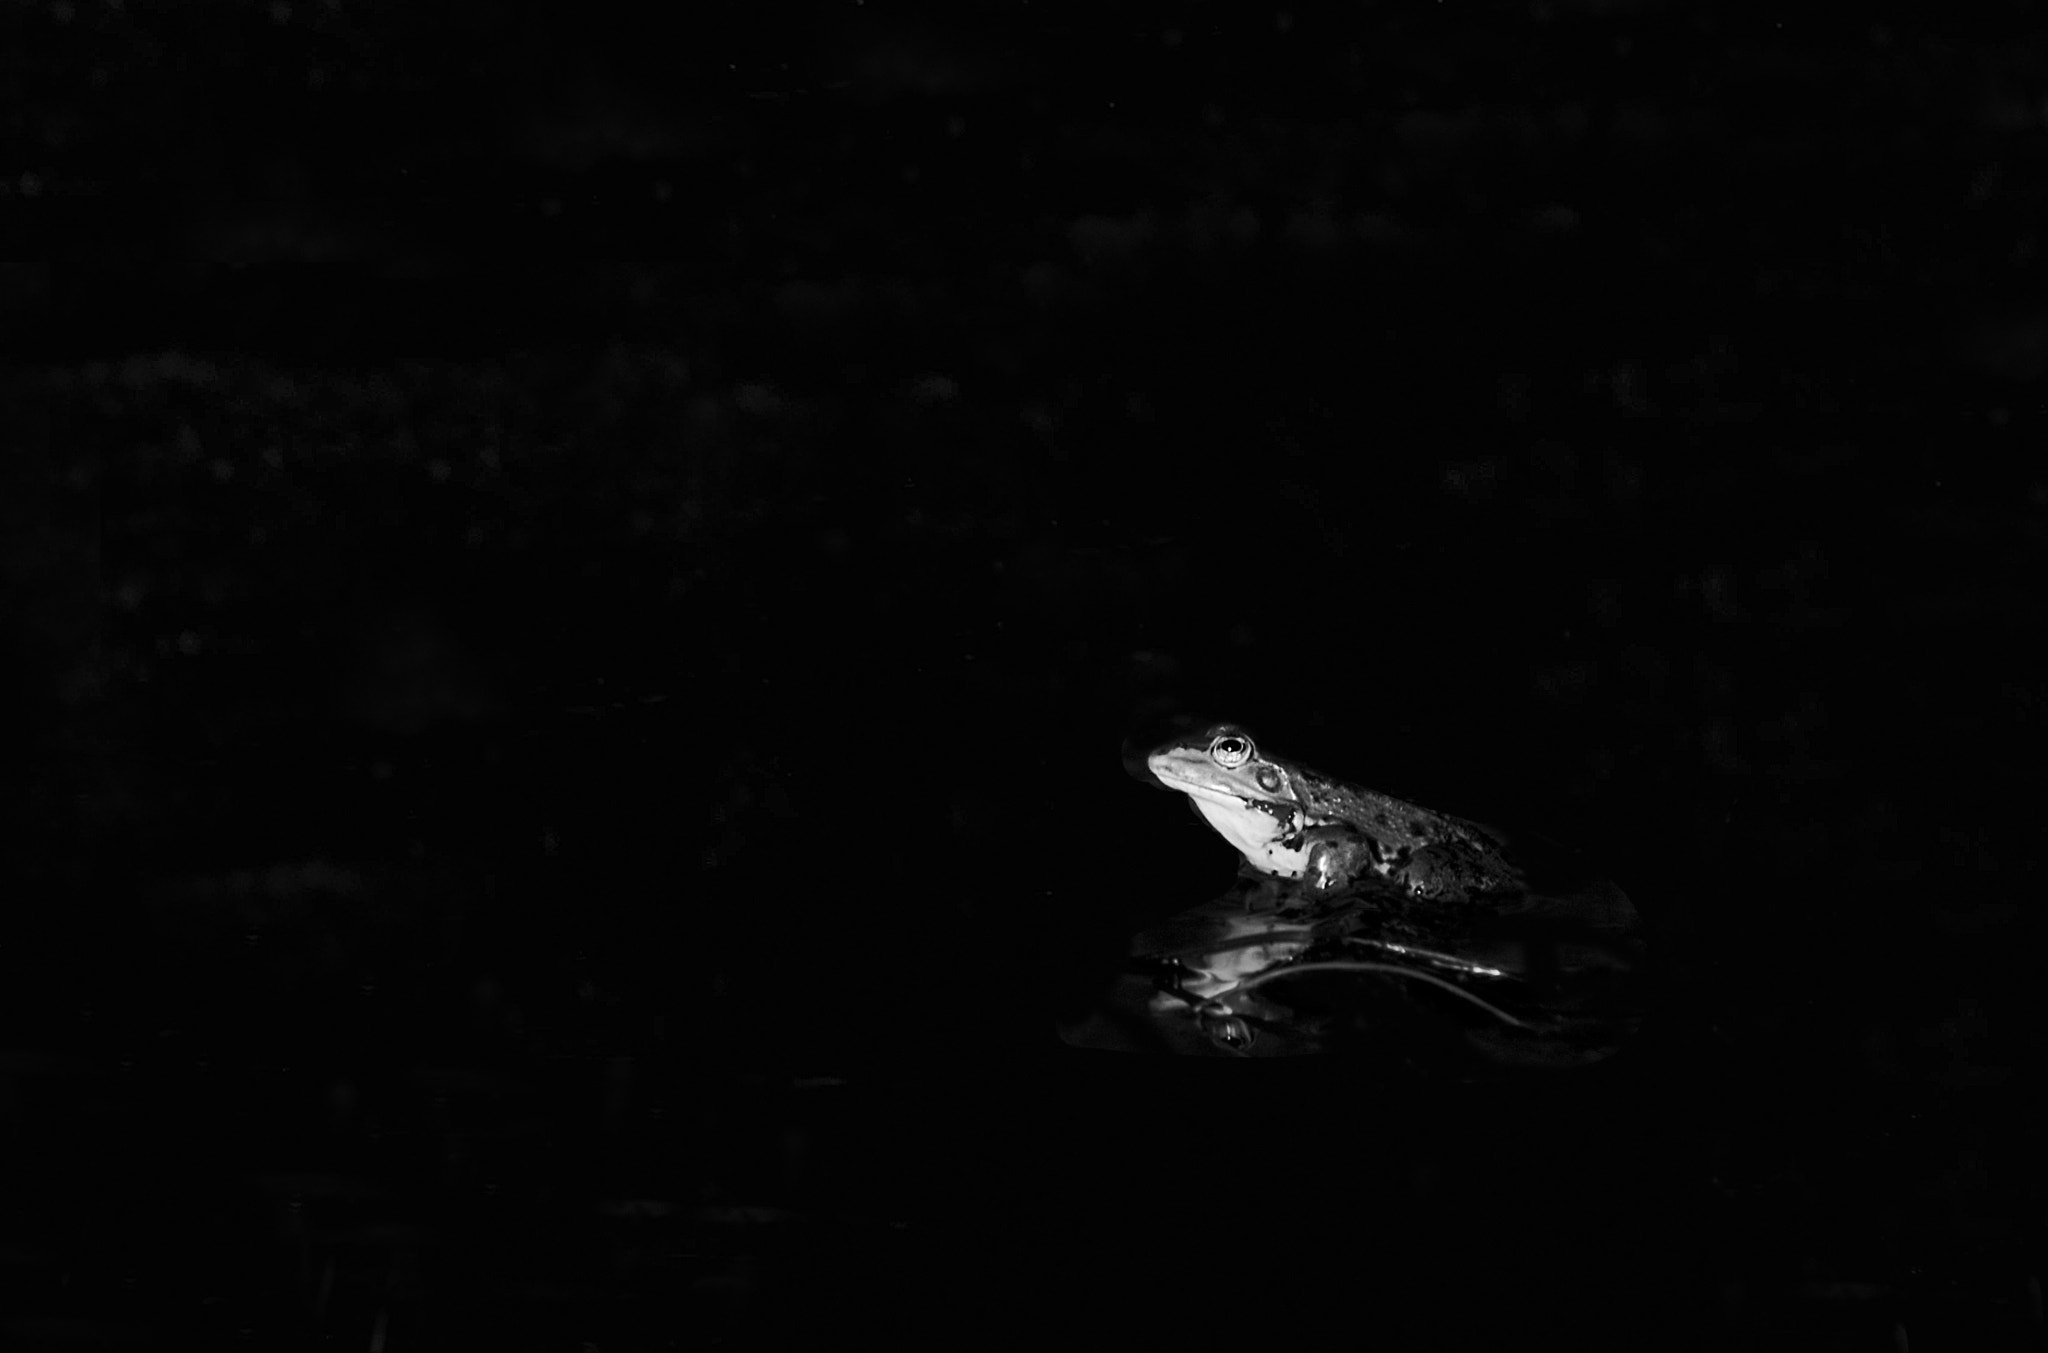 Photograph Frog by Audrey Garcia on 500px